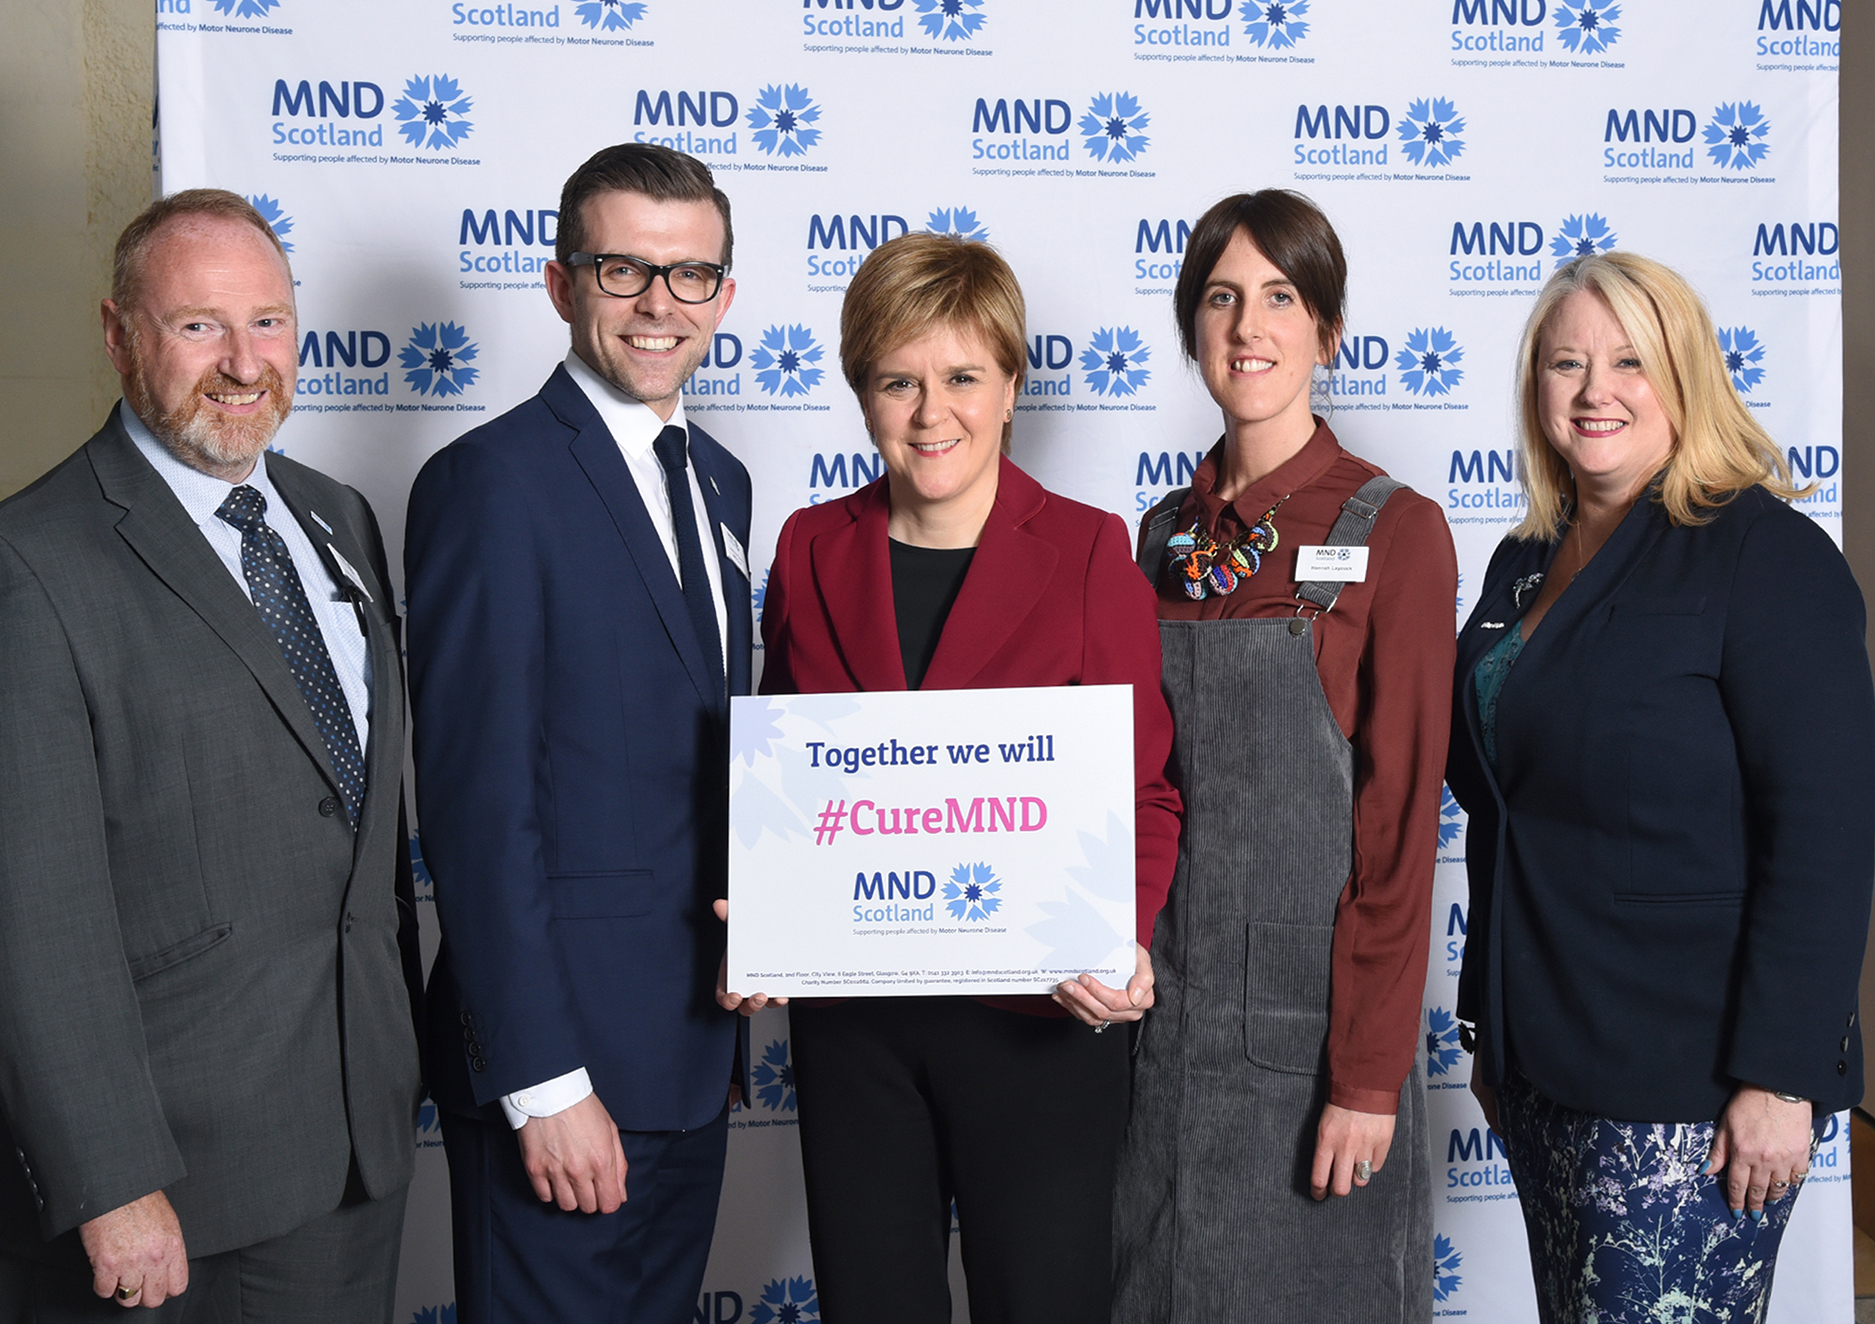 Global MND Awareness Day in the Scottish Parliament